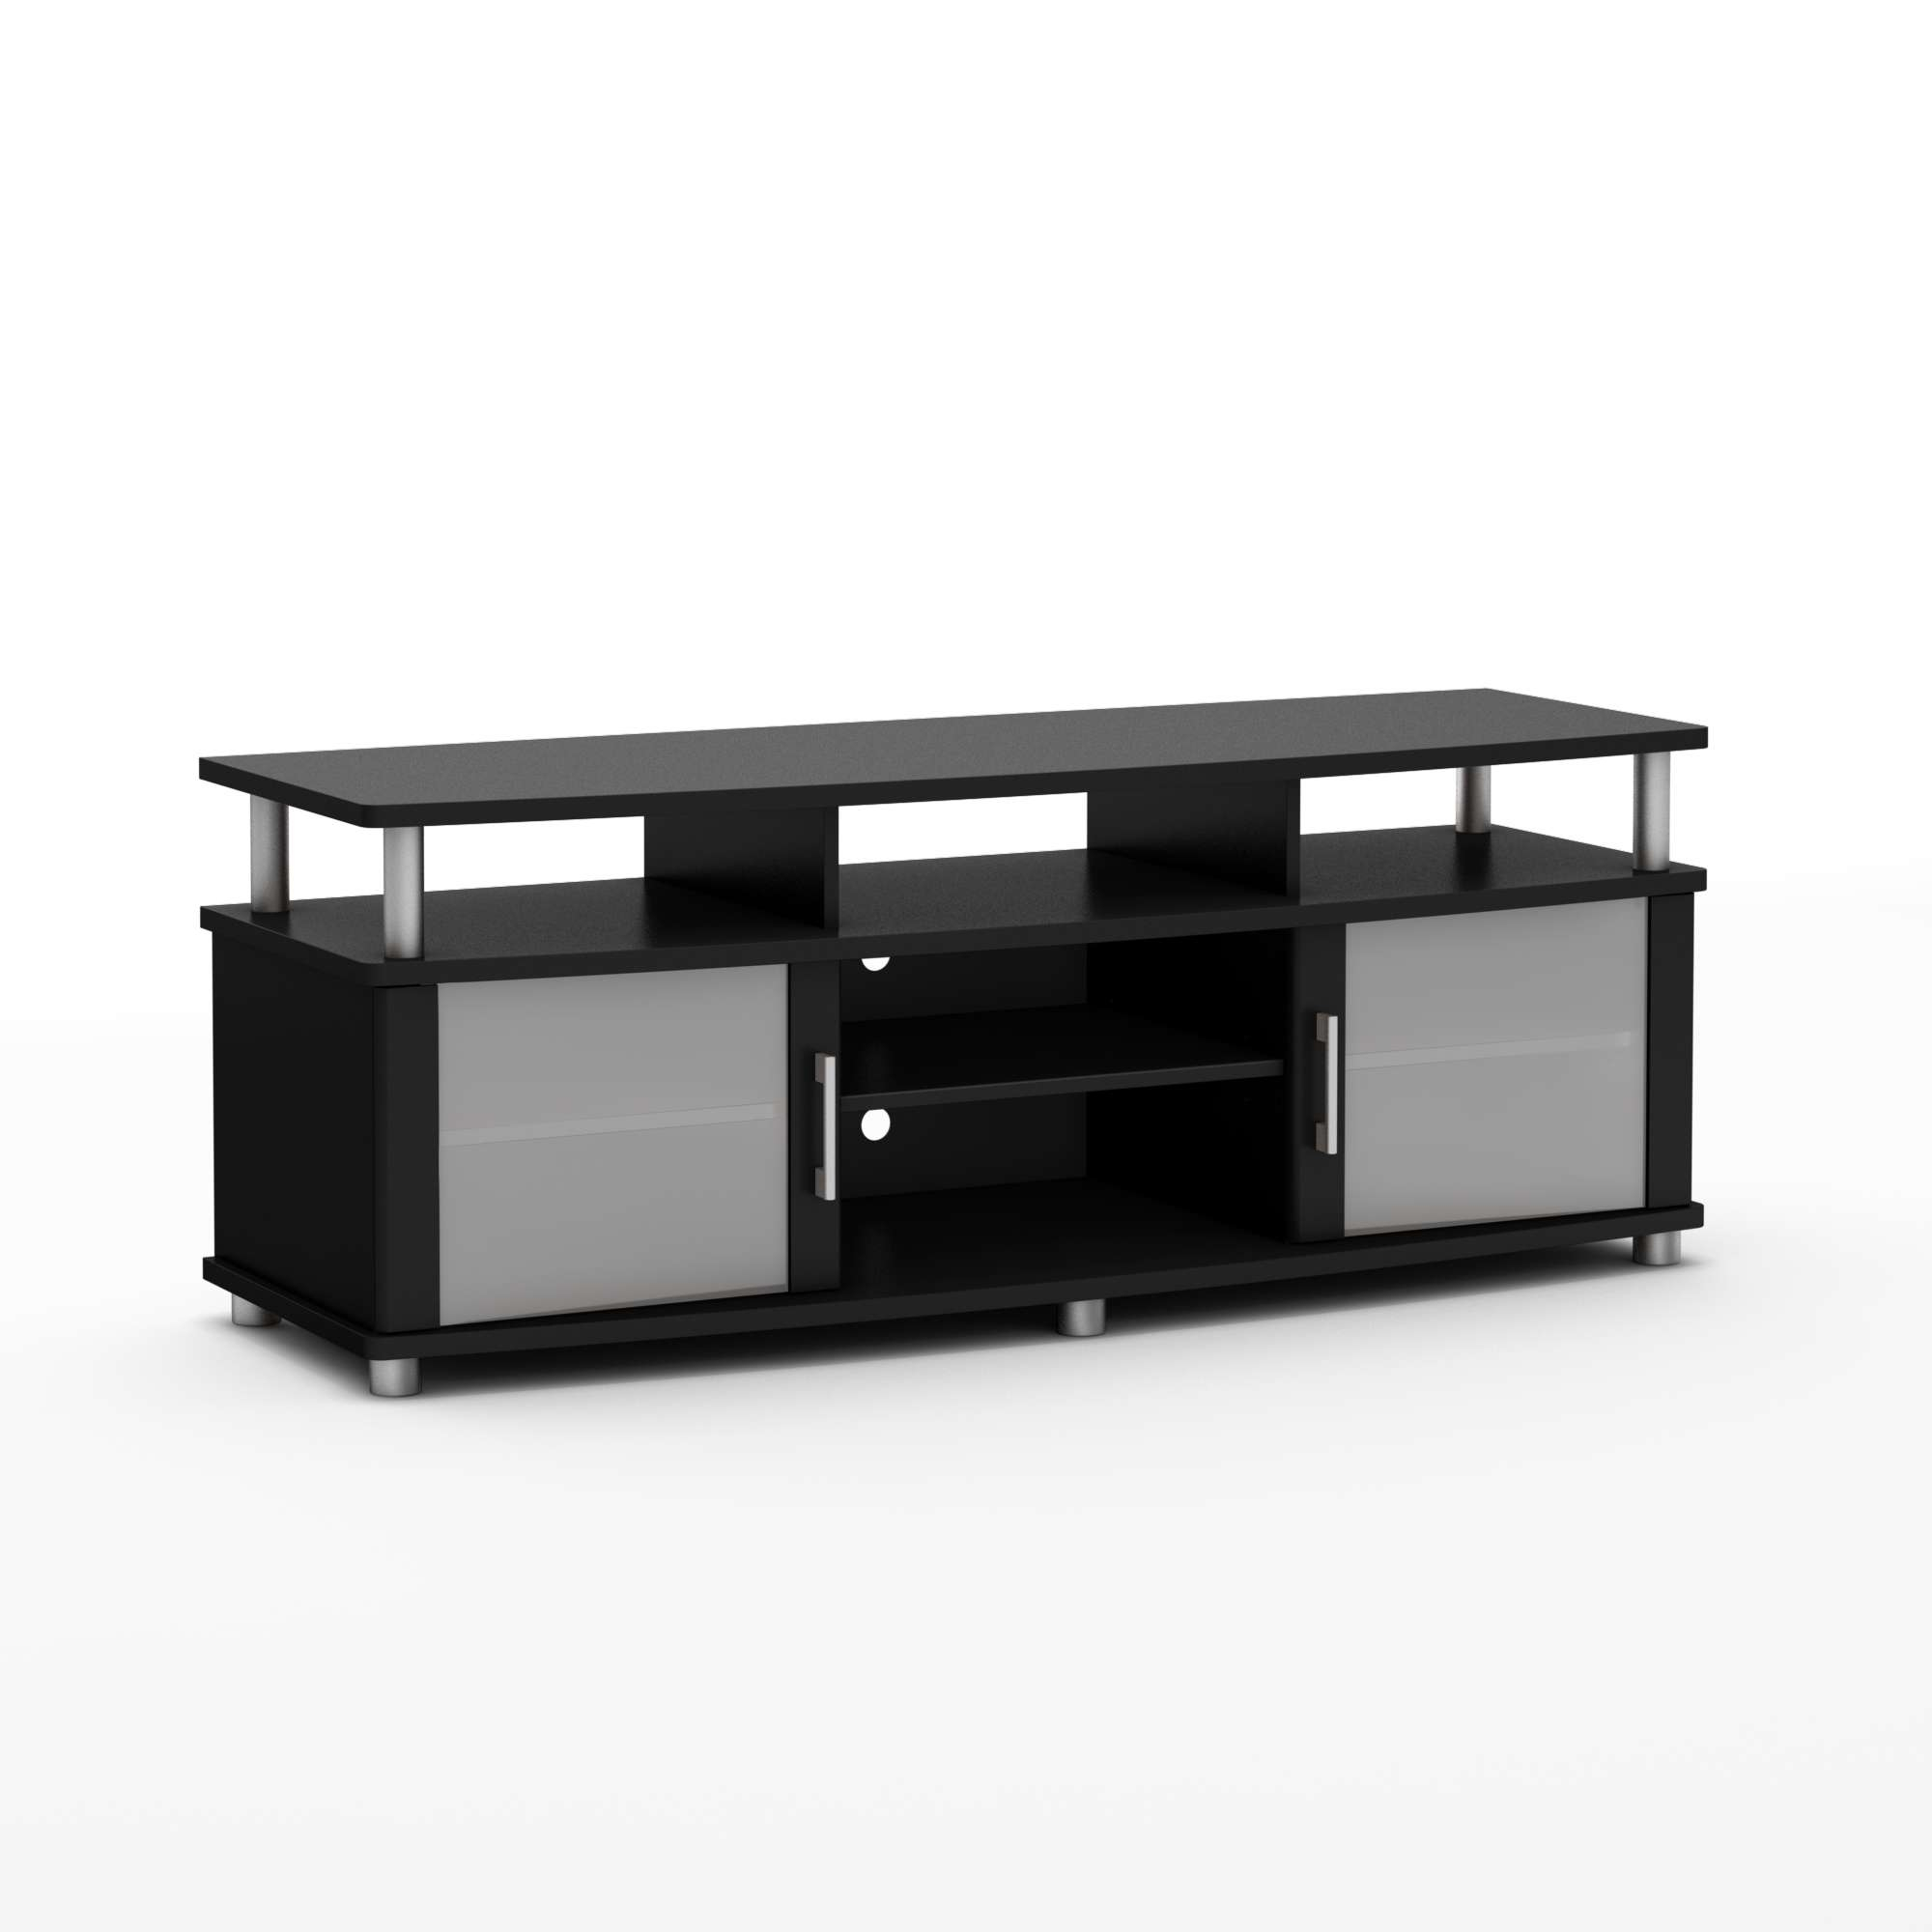 South Shore City Life Pure Black Tv Stand 4270677 For Black Tv Stands (View 13 of 20)